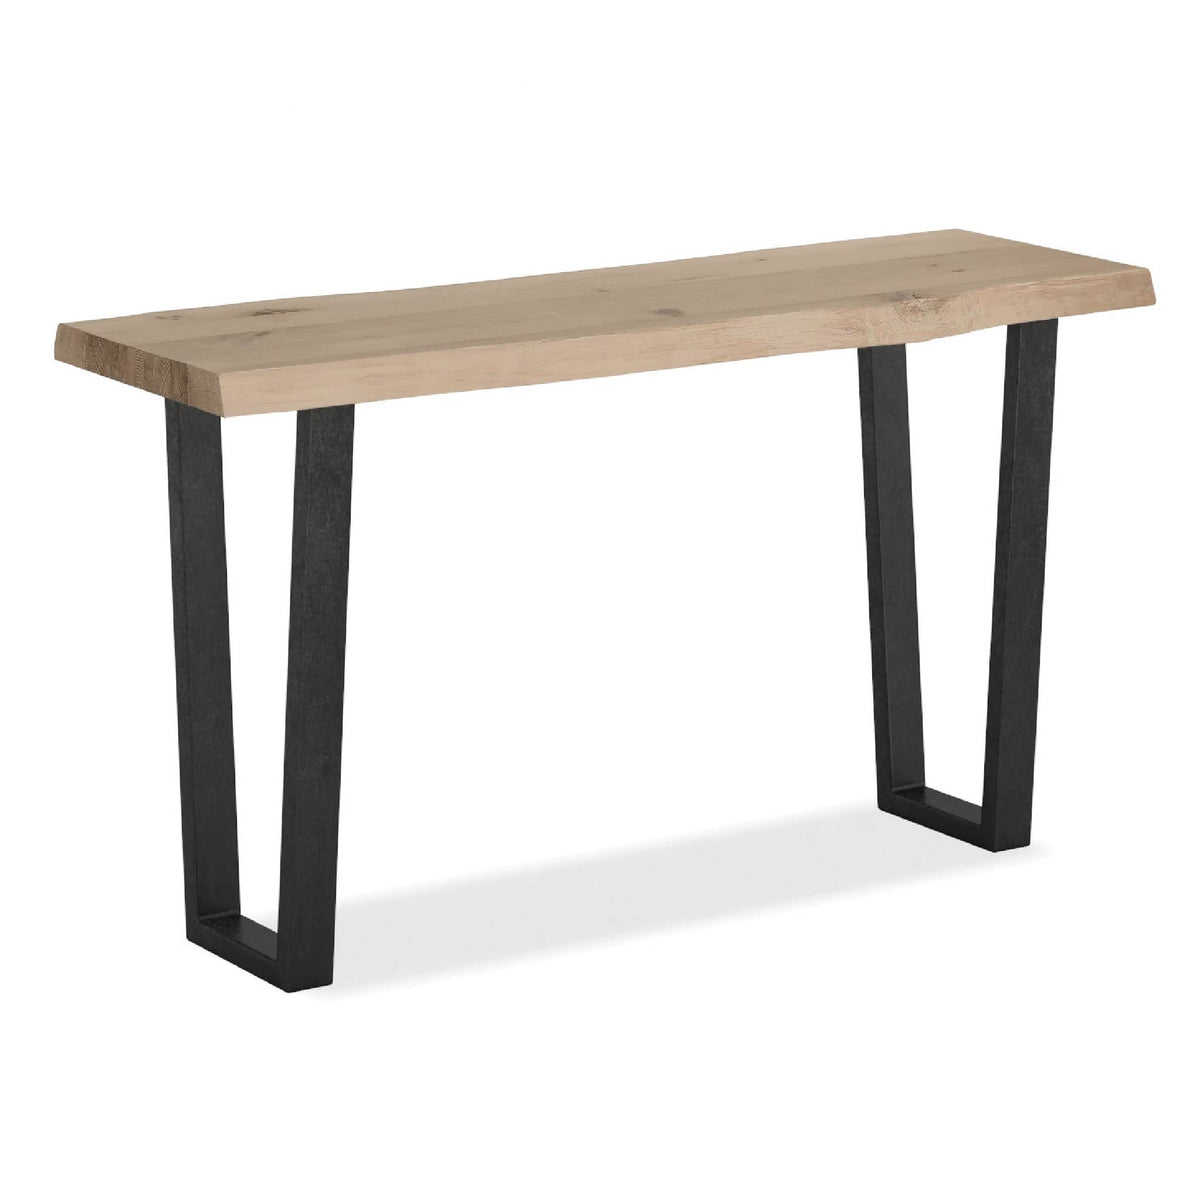 Oak Mill Console Table - Metal Base - White Oil by Roseland Furniture